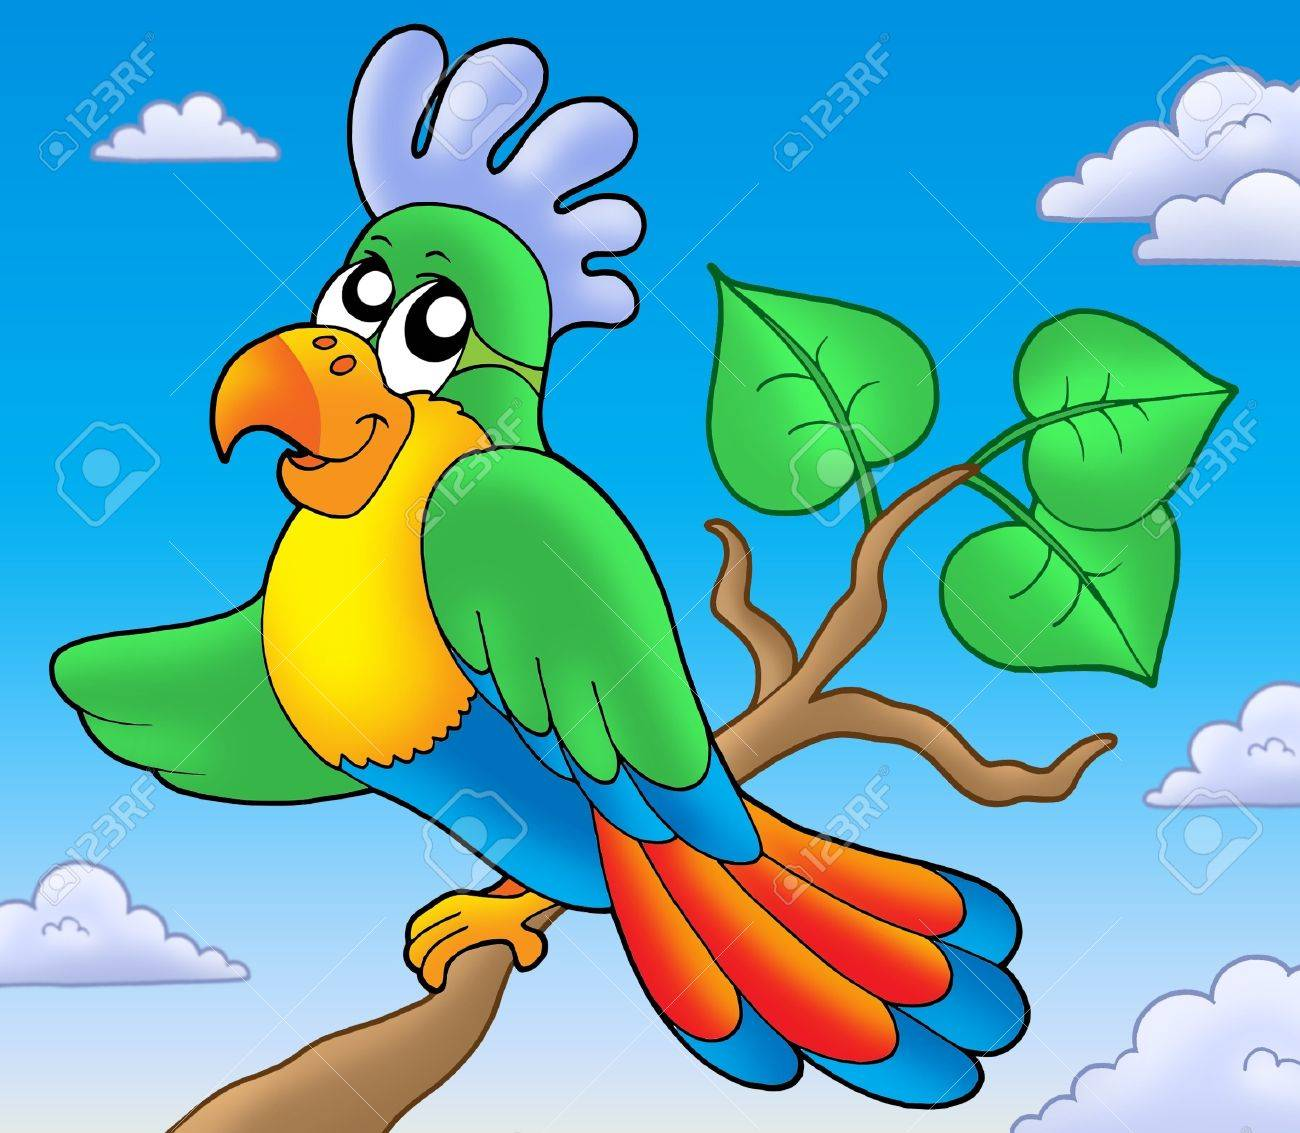 Cartoon parrot on branch - color illustration. Stock Photo - 6860808